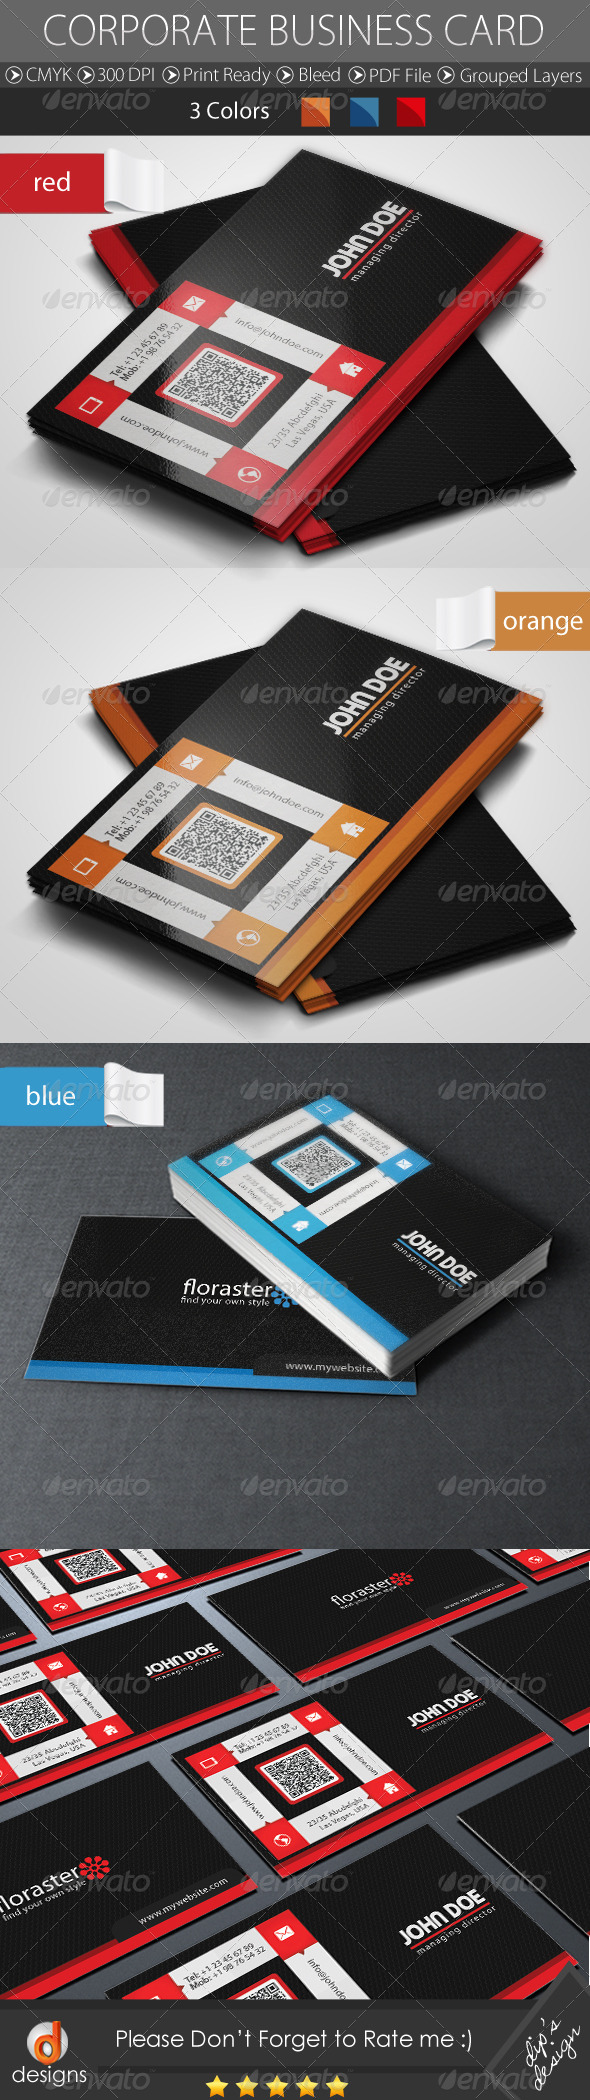 GraphicRiver Corporate Business Card 5100825